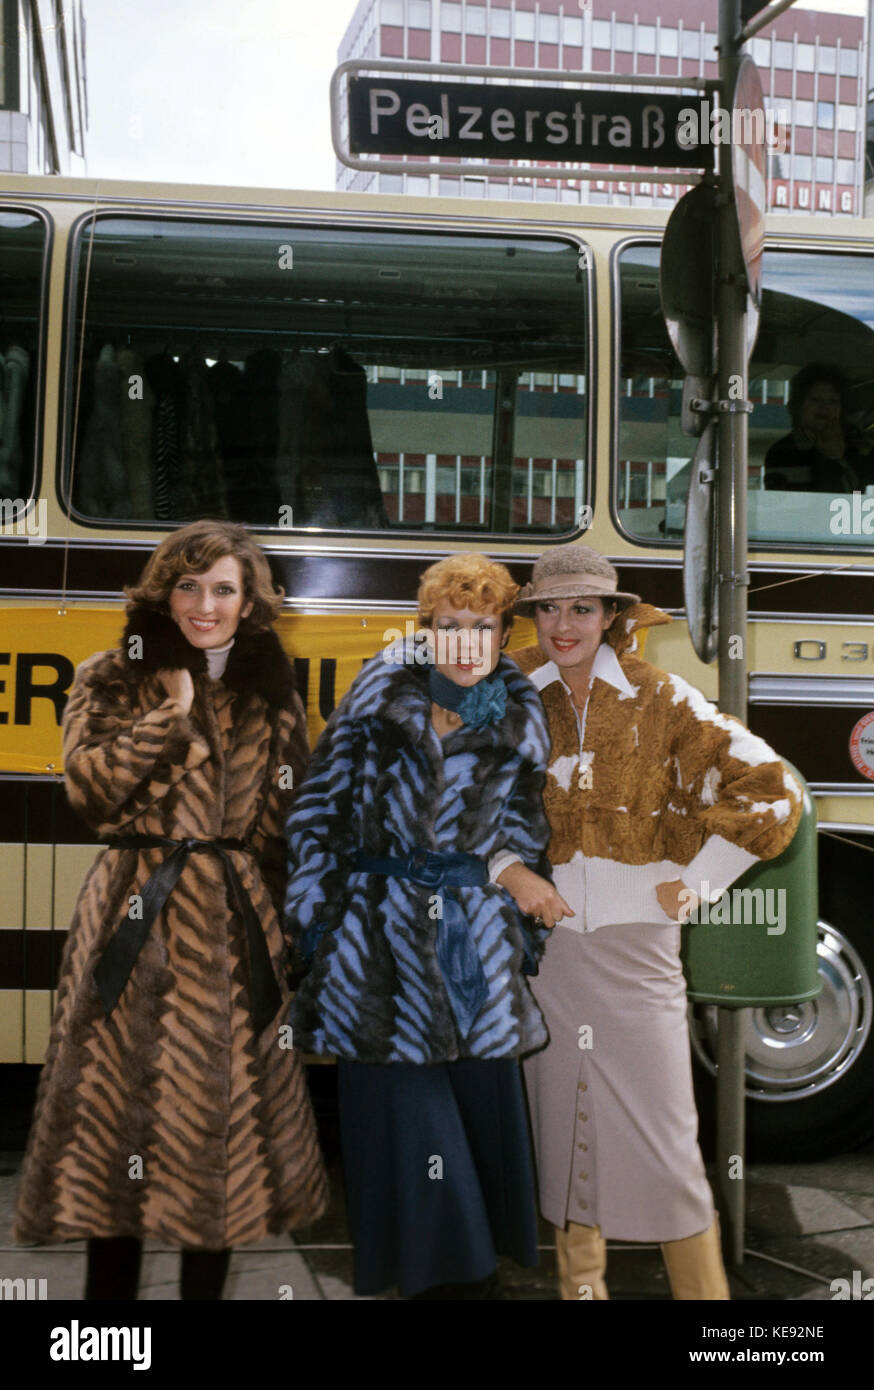 Three women are wearing fur coats in front of a bus in